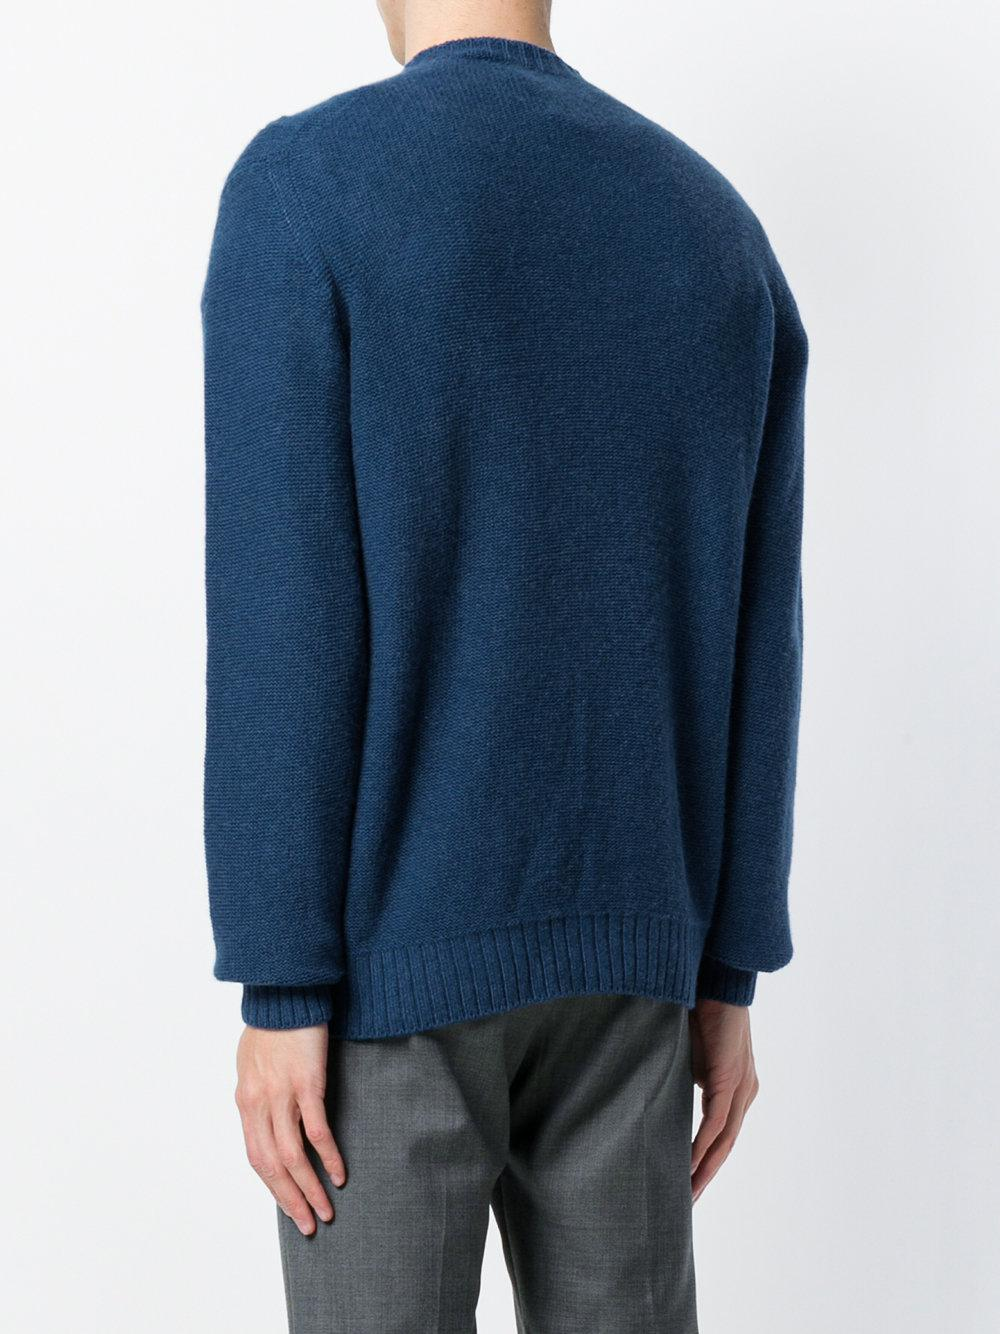 Loro Piana Cashmere Textured Weave Jumper in Blue for Men